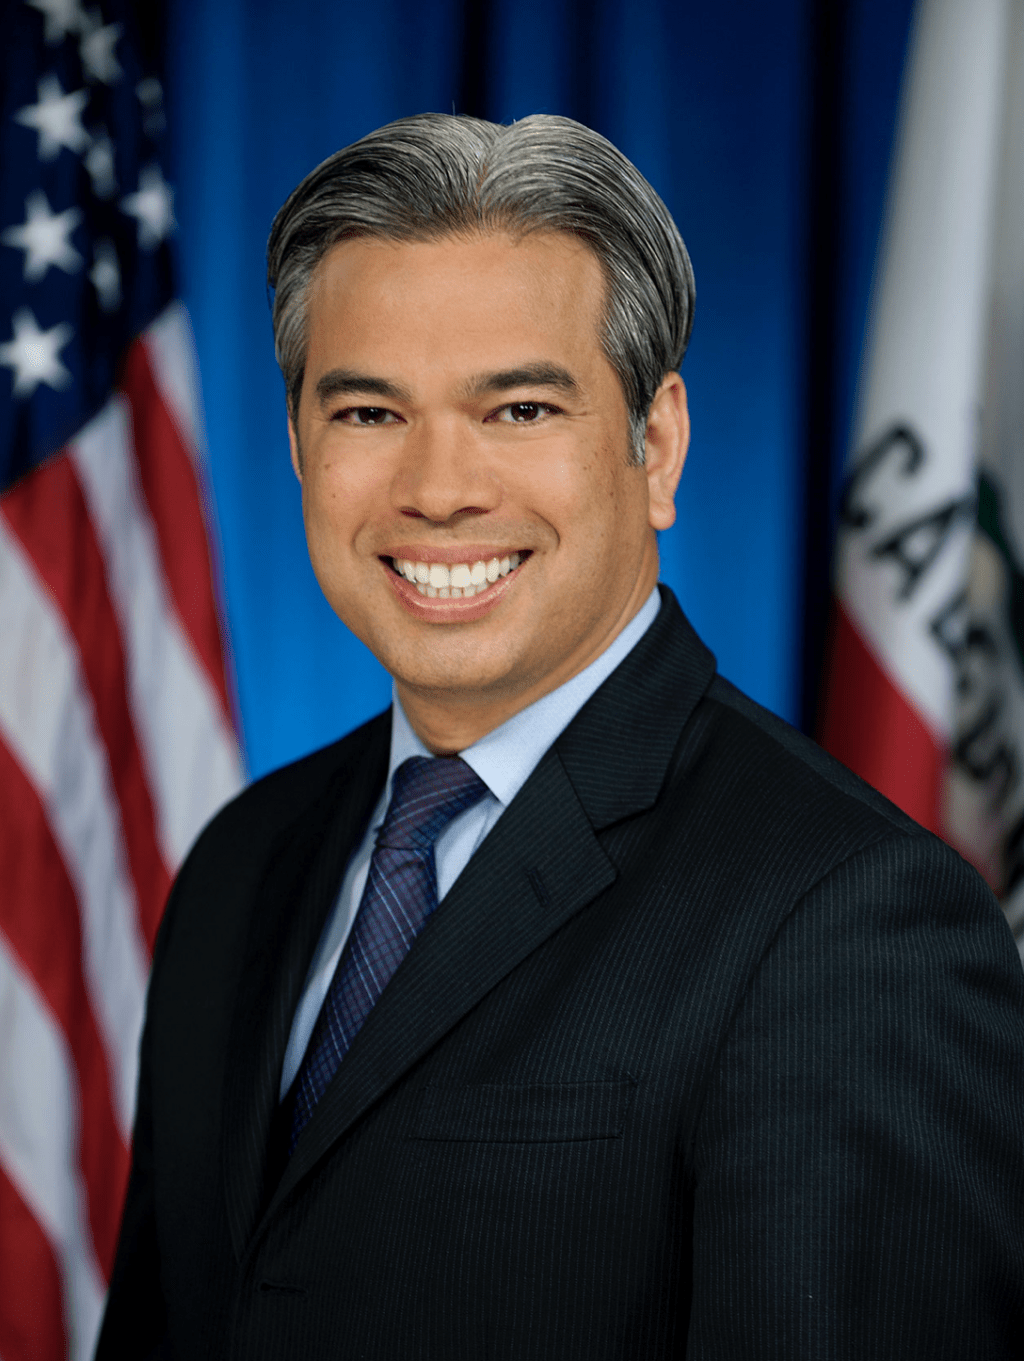 Calif. Atty Gen. Bonta Was Leading Force in Fight That Saved Obamacare